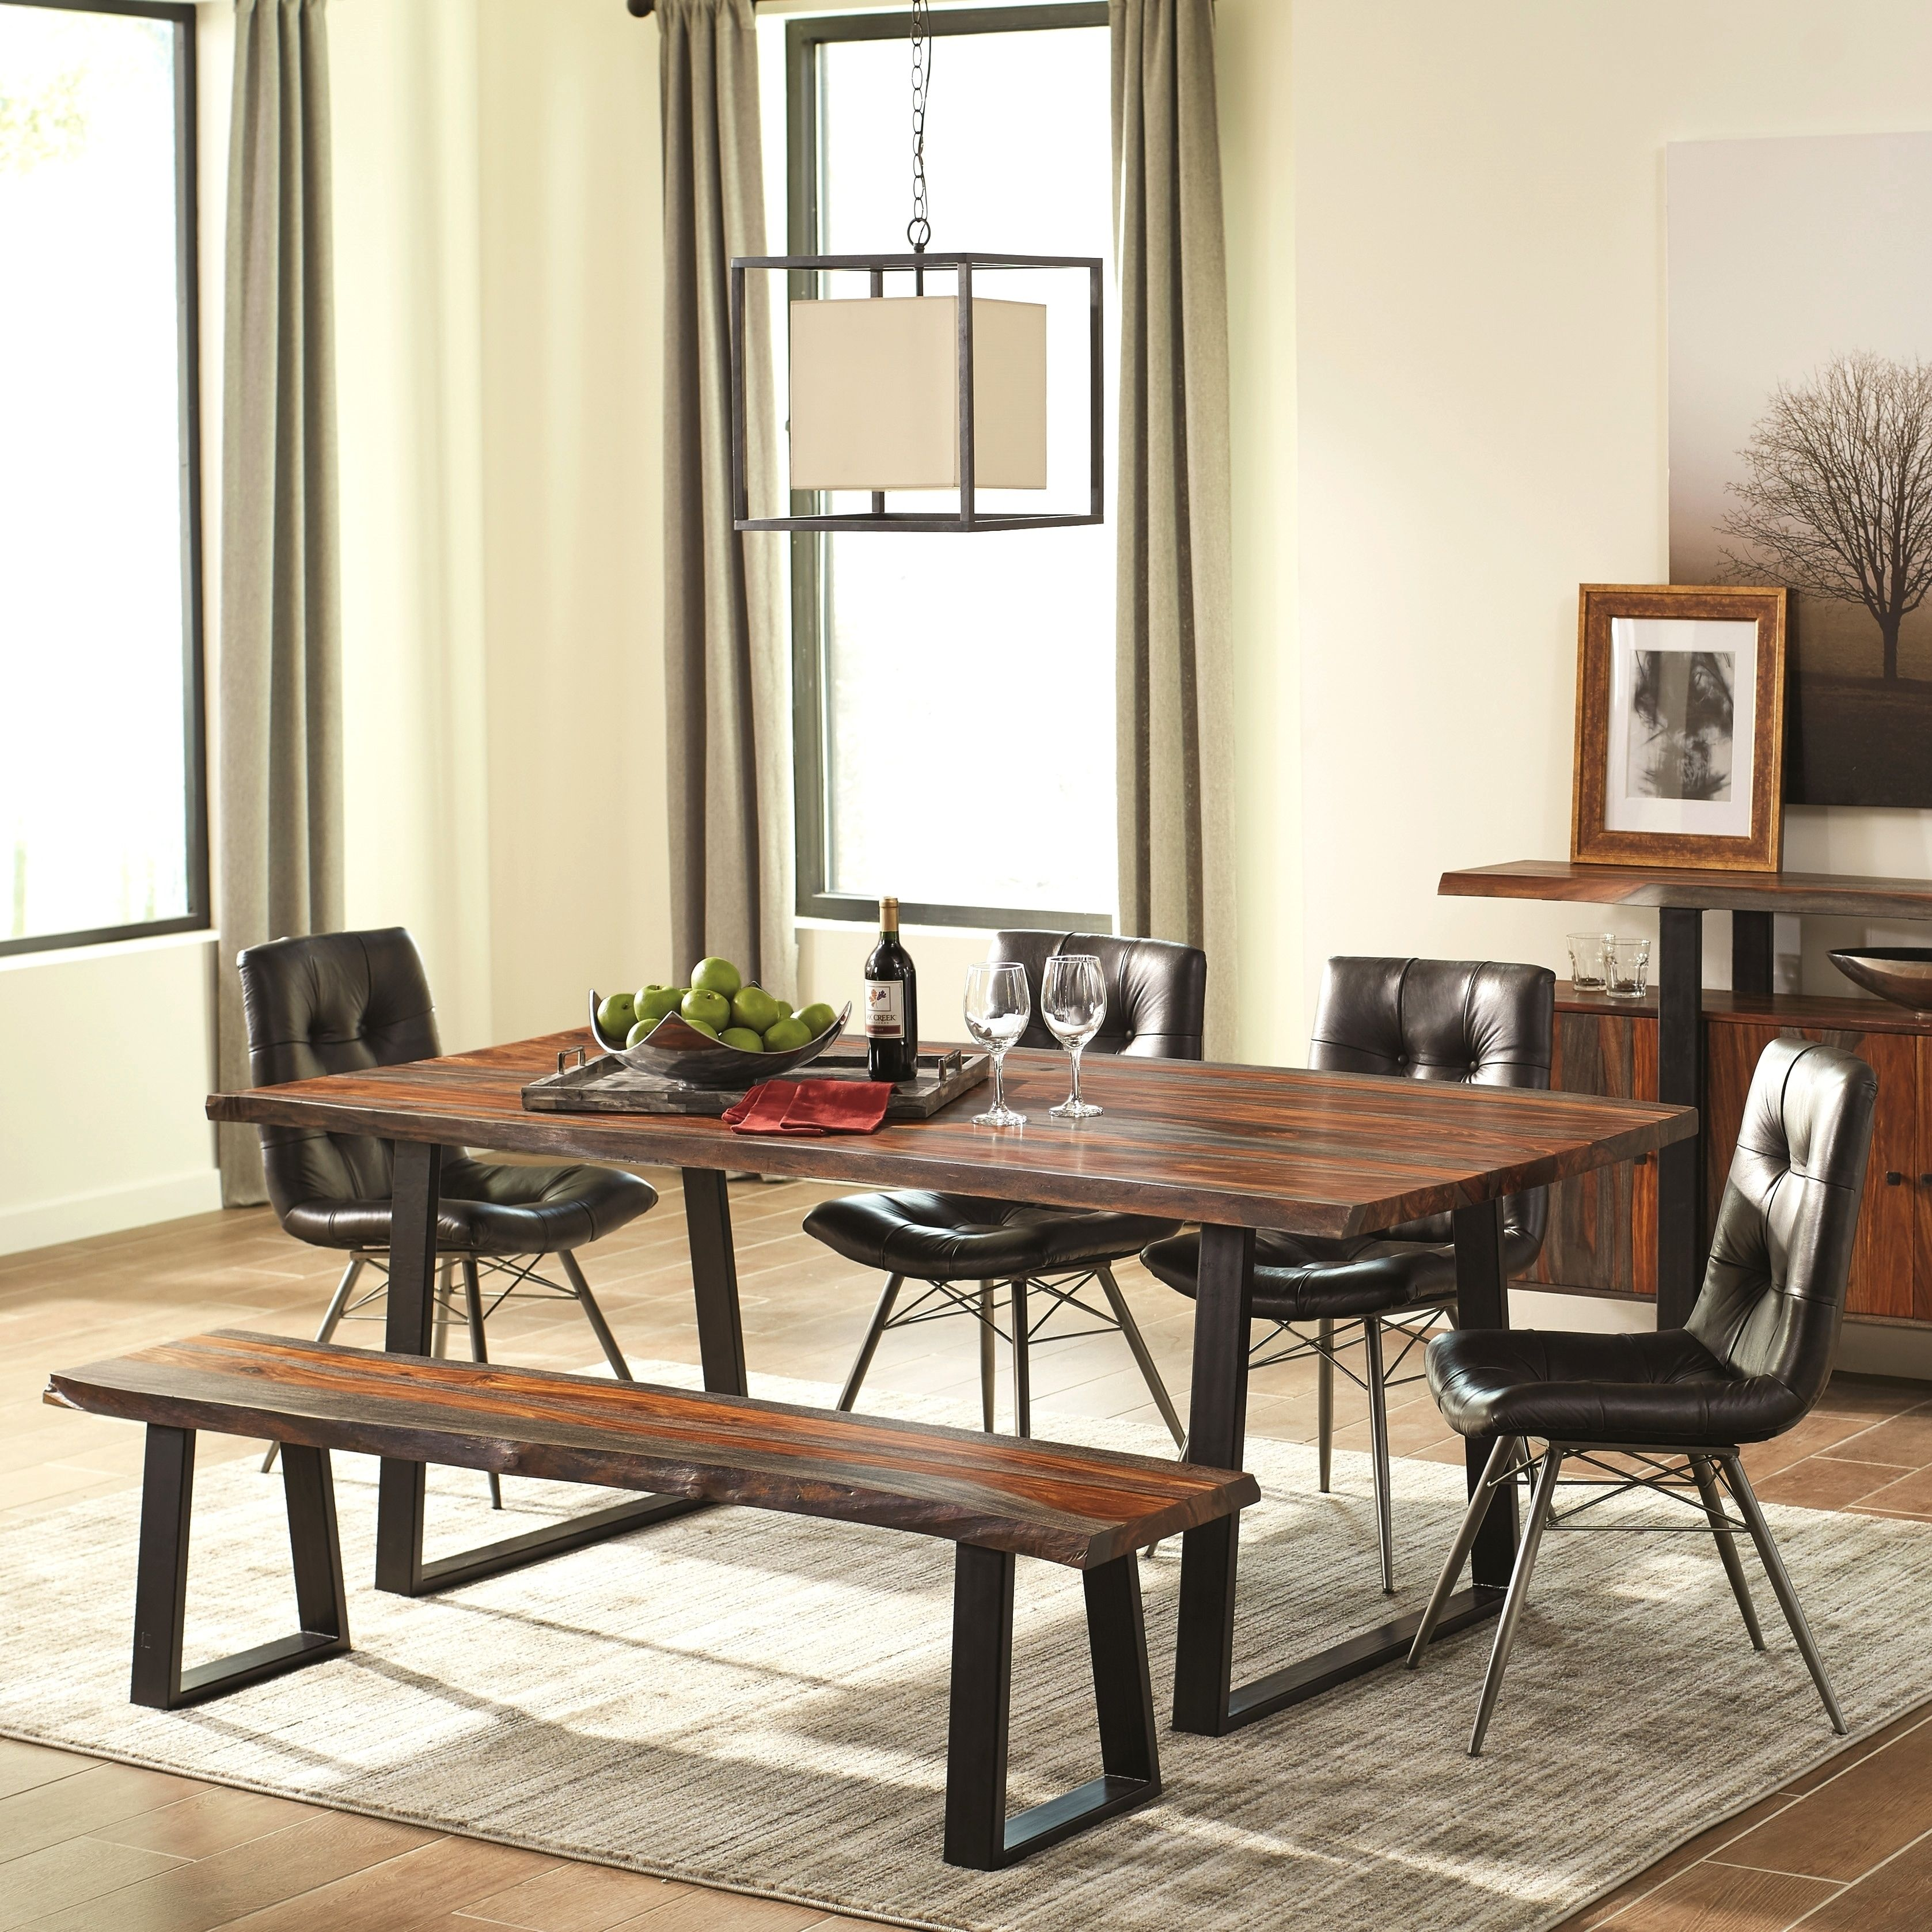 Modern rustic dining room table  Modern Artistic Designed Dining Set with Danish Style Button Tufted